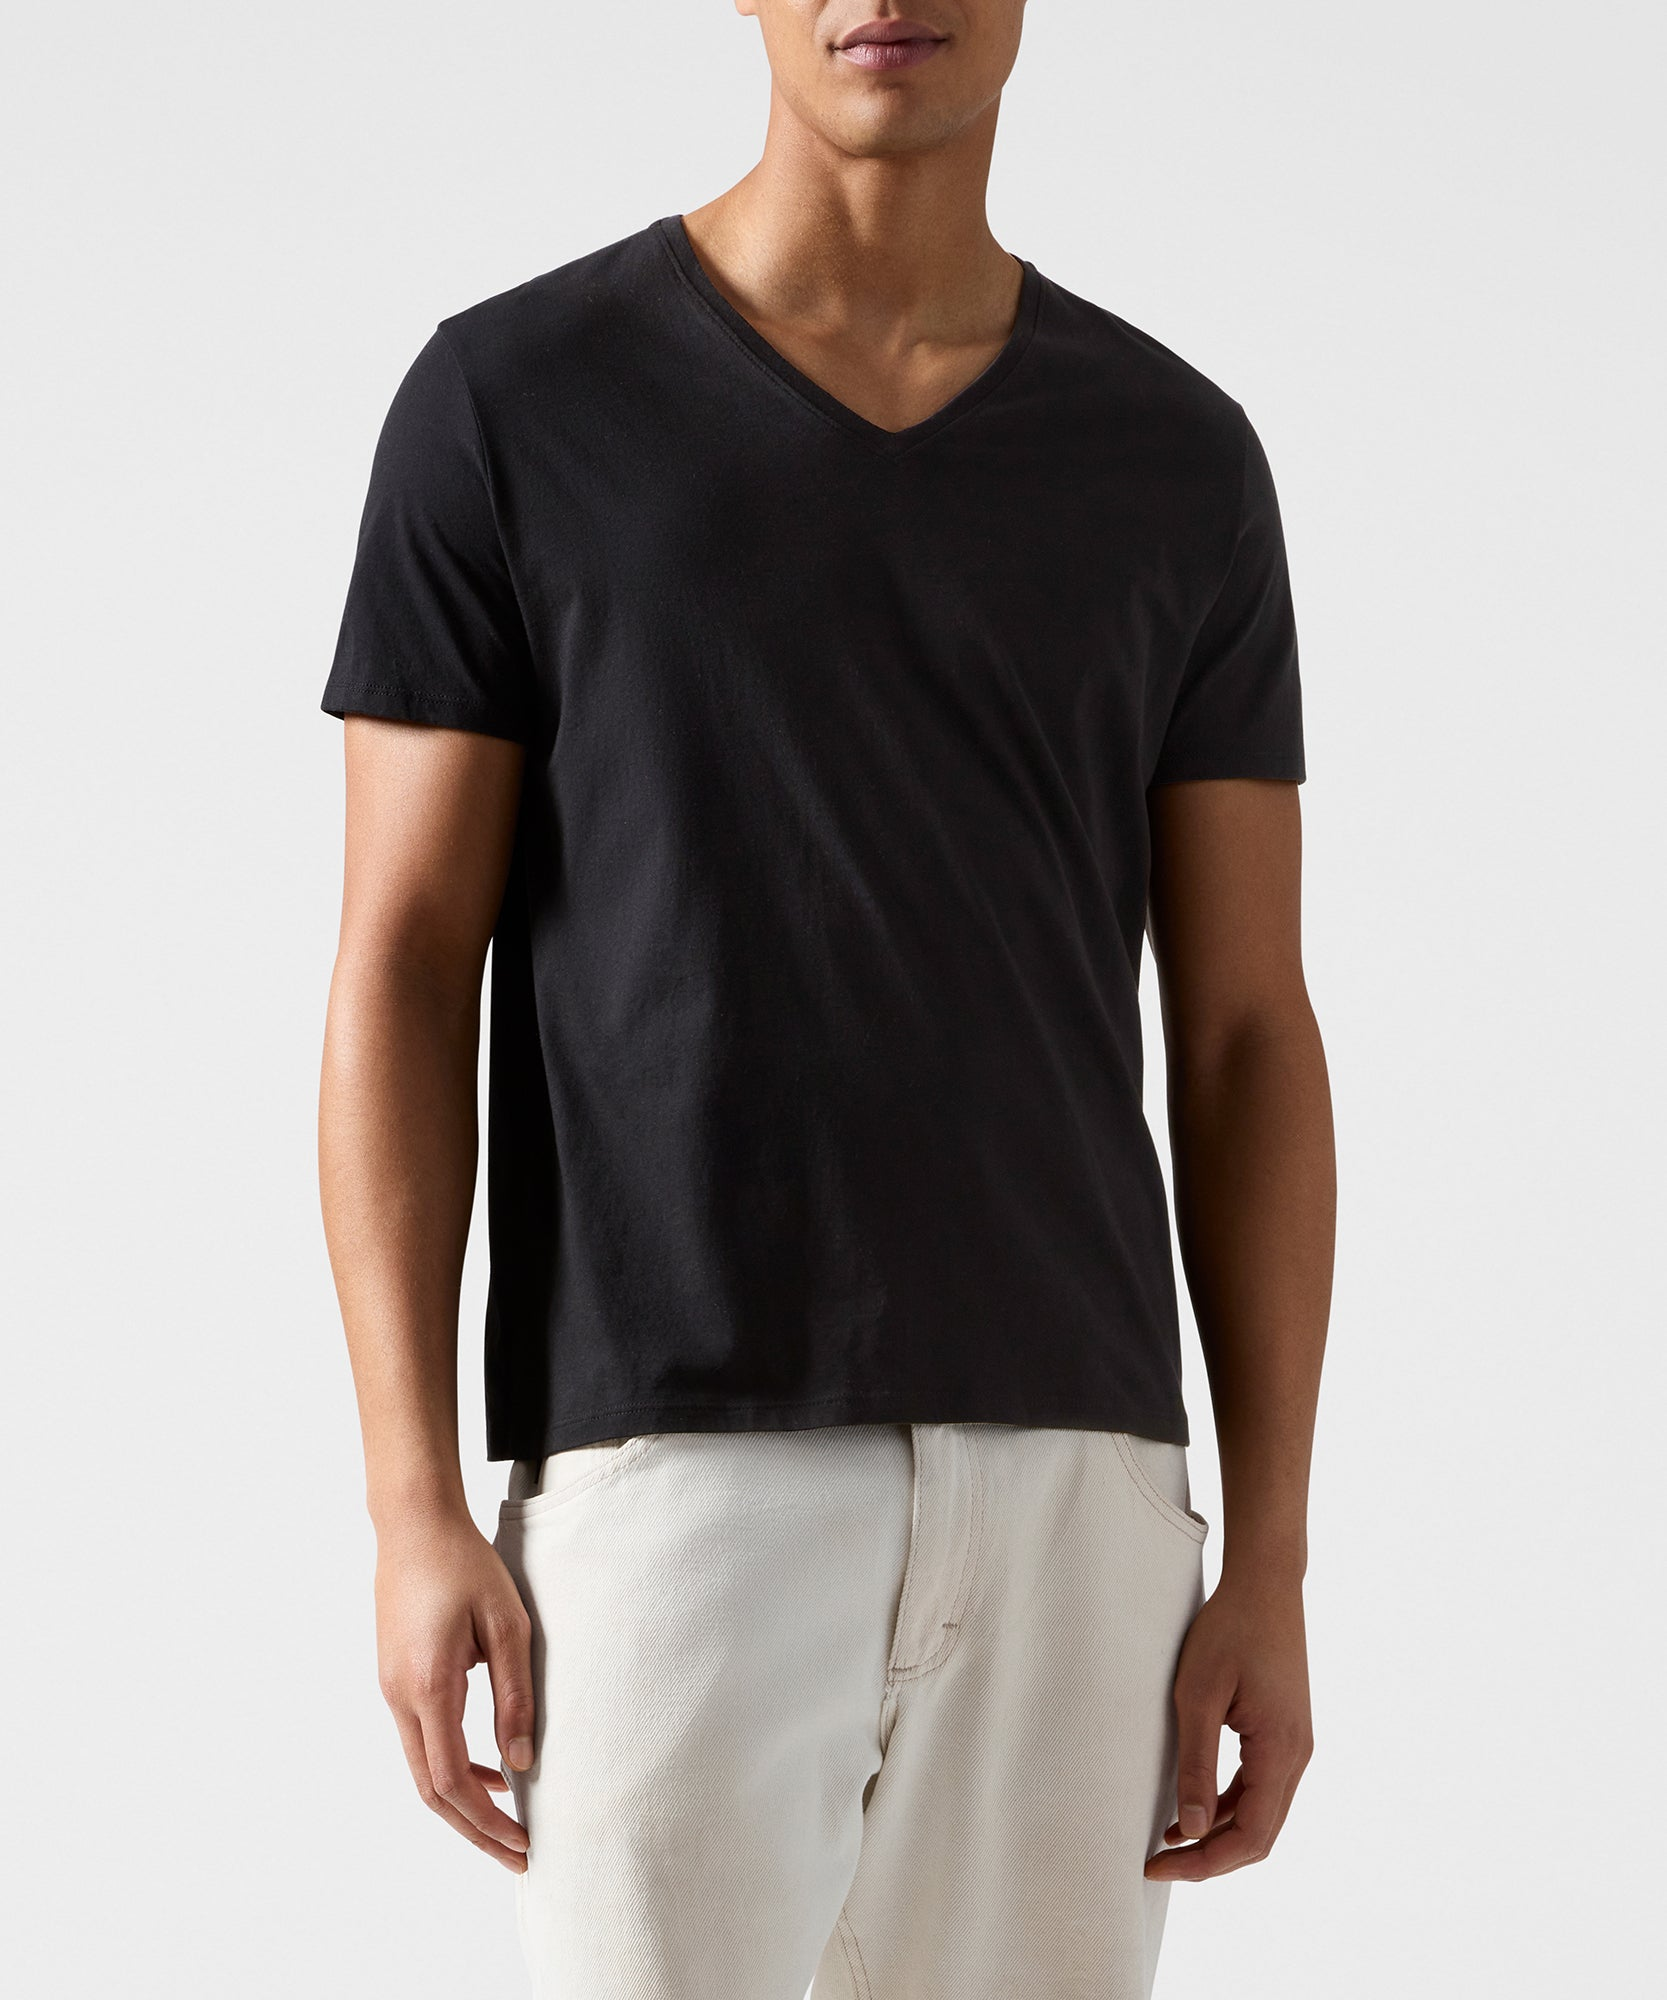 Black Classic Jersey V-Neck Tee - Men's Cotton Short Sleeve T-shirt by ATM Anthony Thomas Melillo